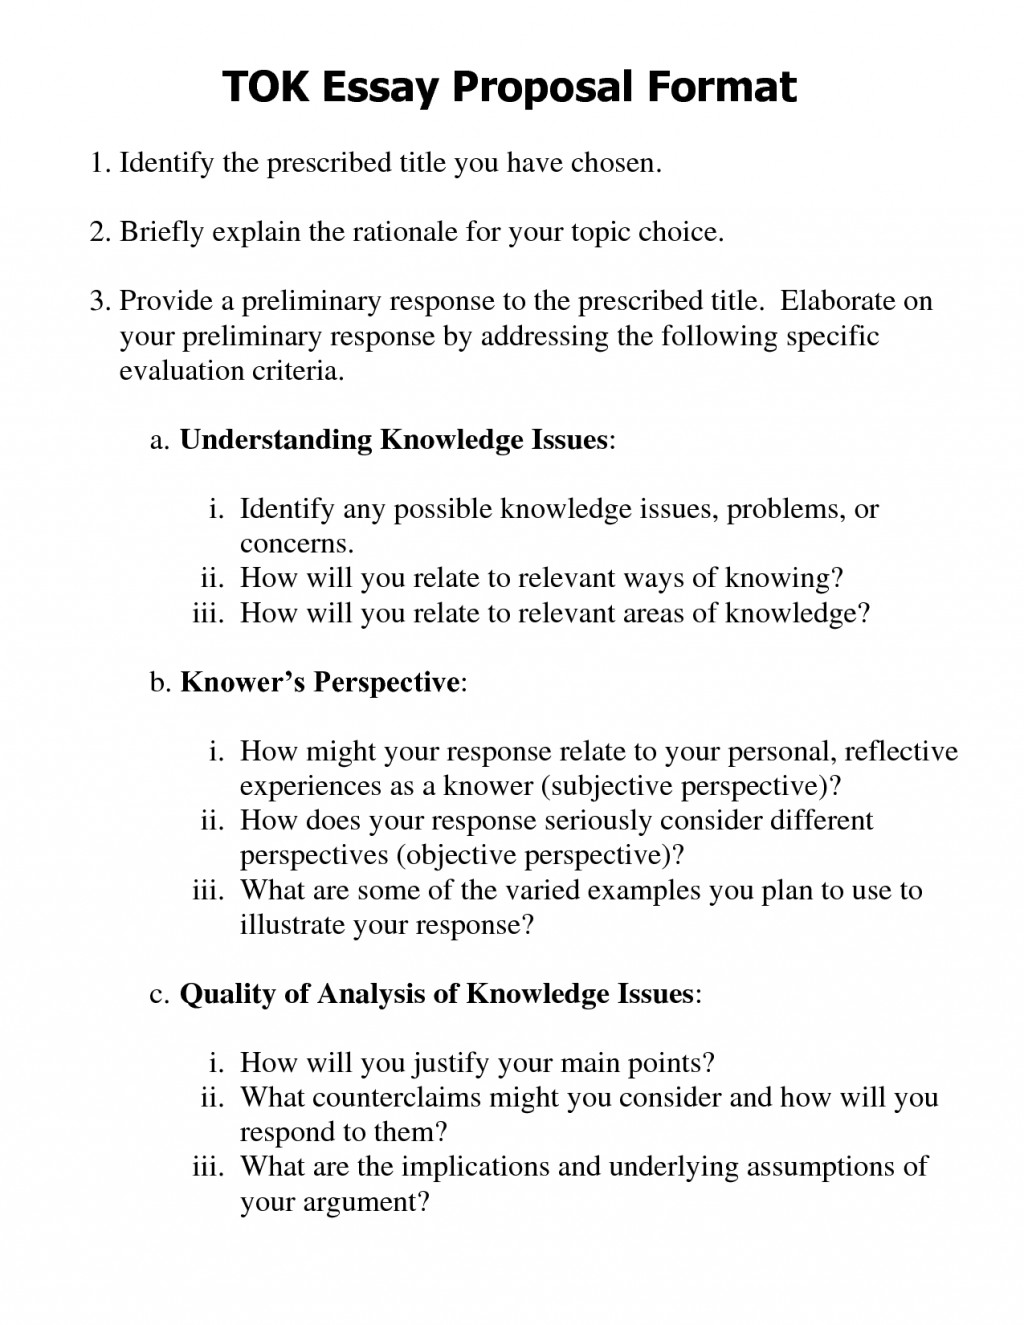 001 Olxkktmp0l Essay Example Proposal Outstanding Outline Argument Research Large